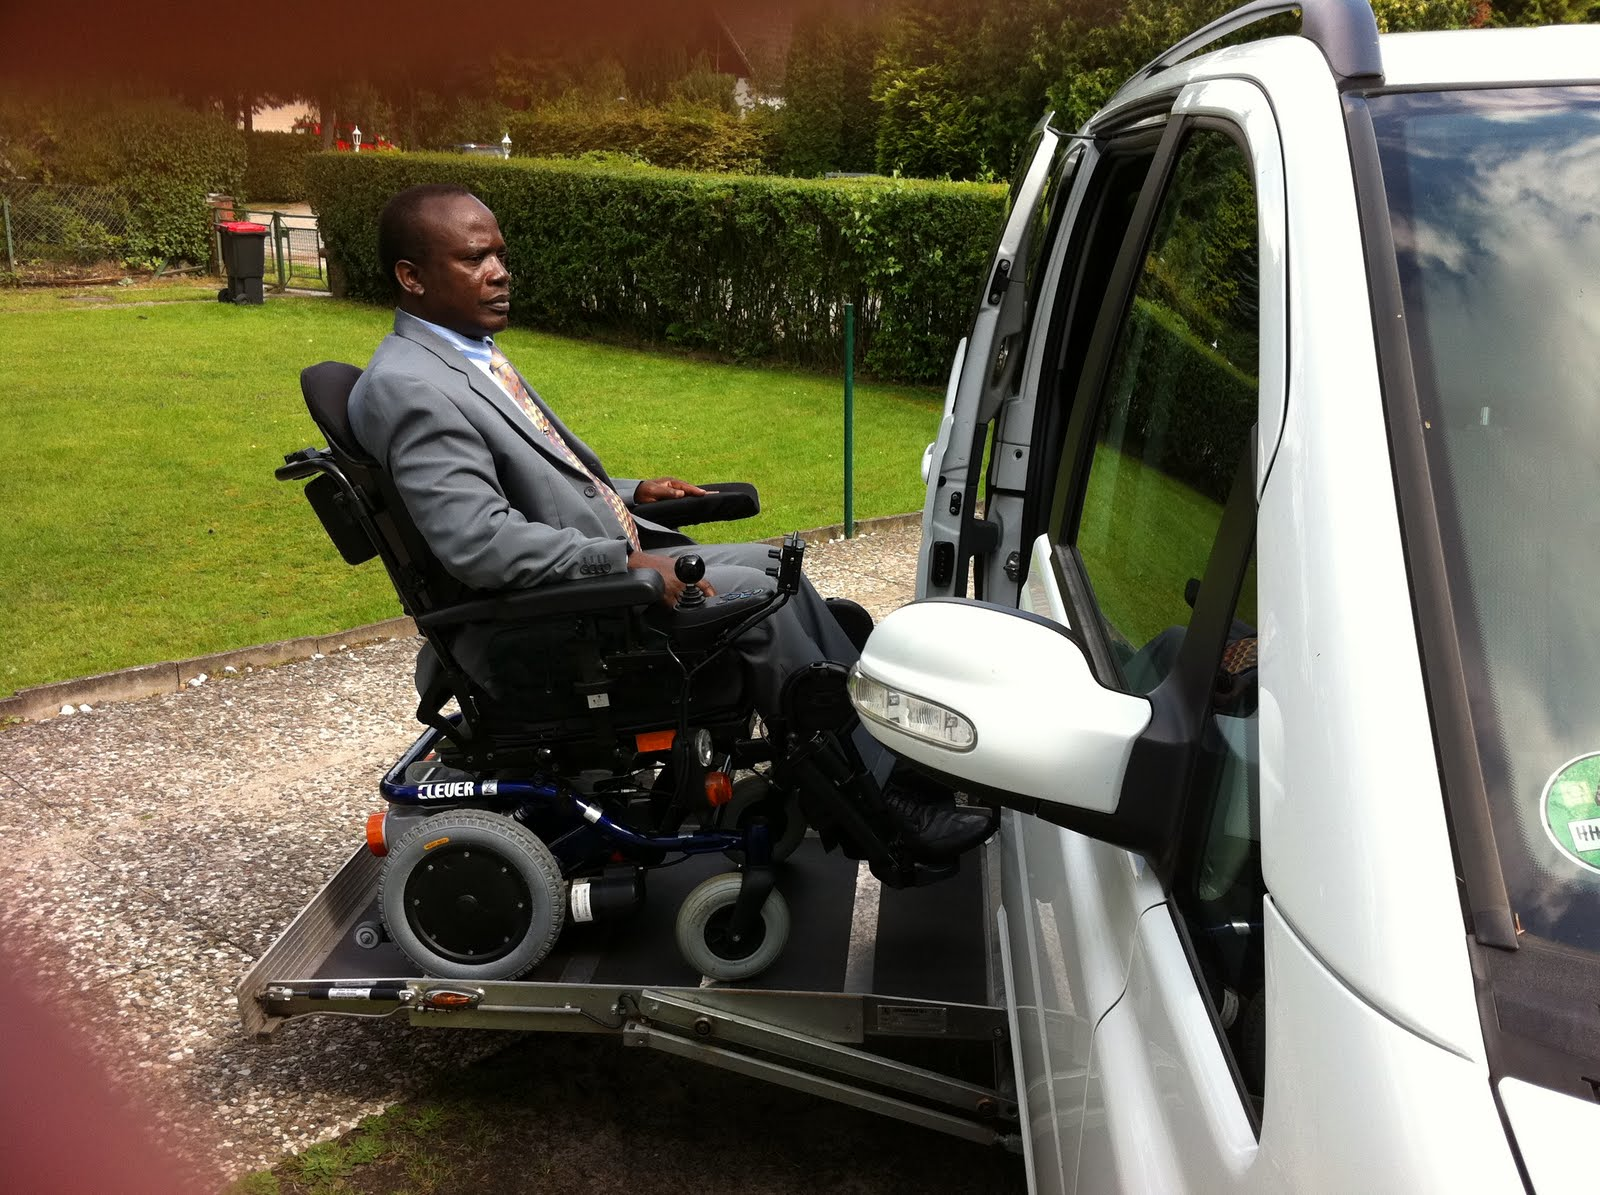 Story Of Apostle Dr. Michael Ntumy & 8 Years Of Paralysis